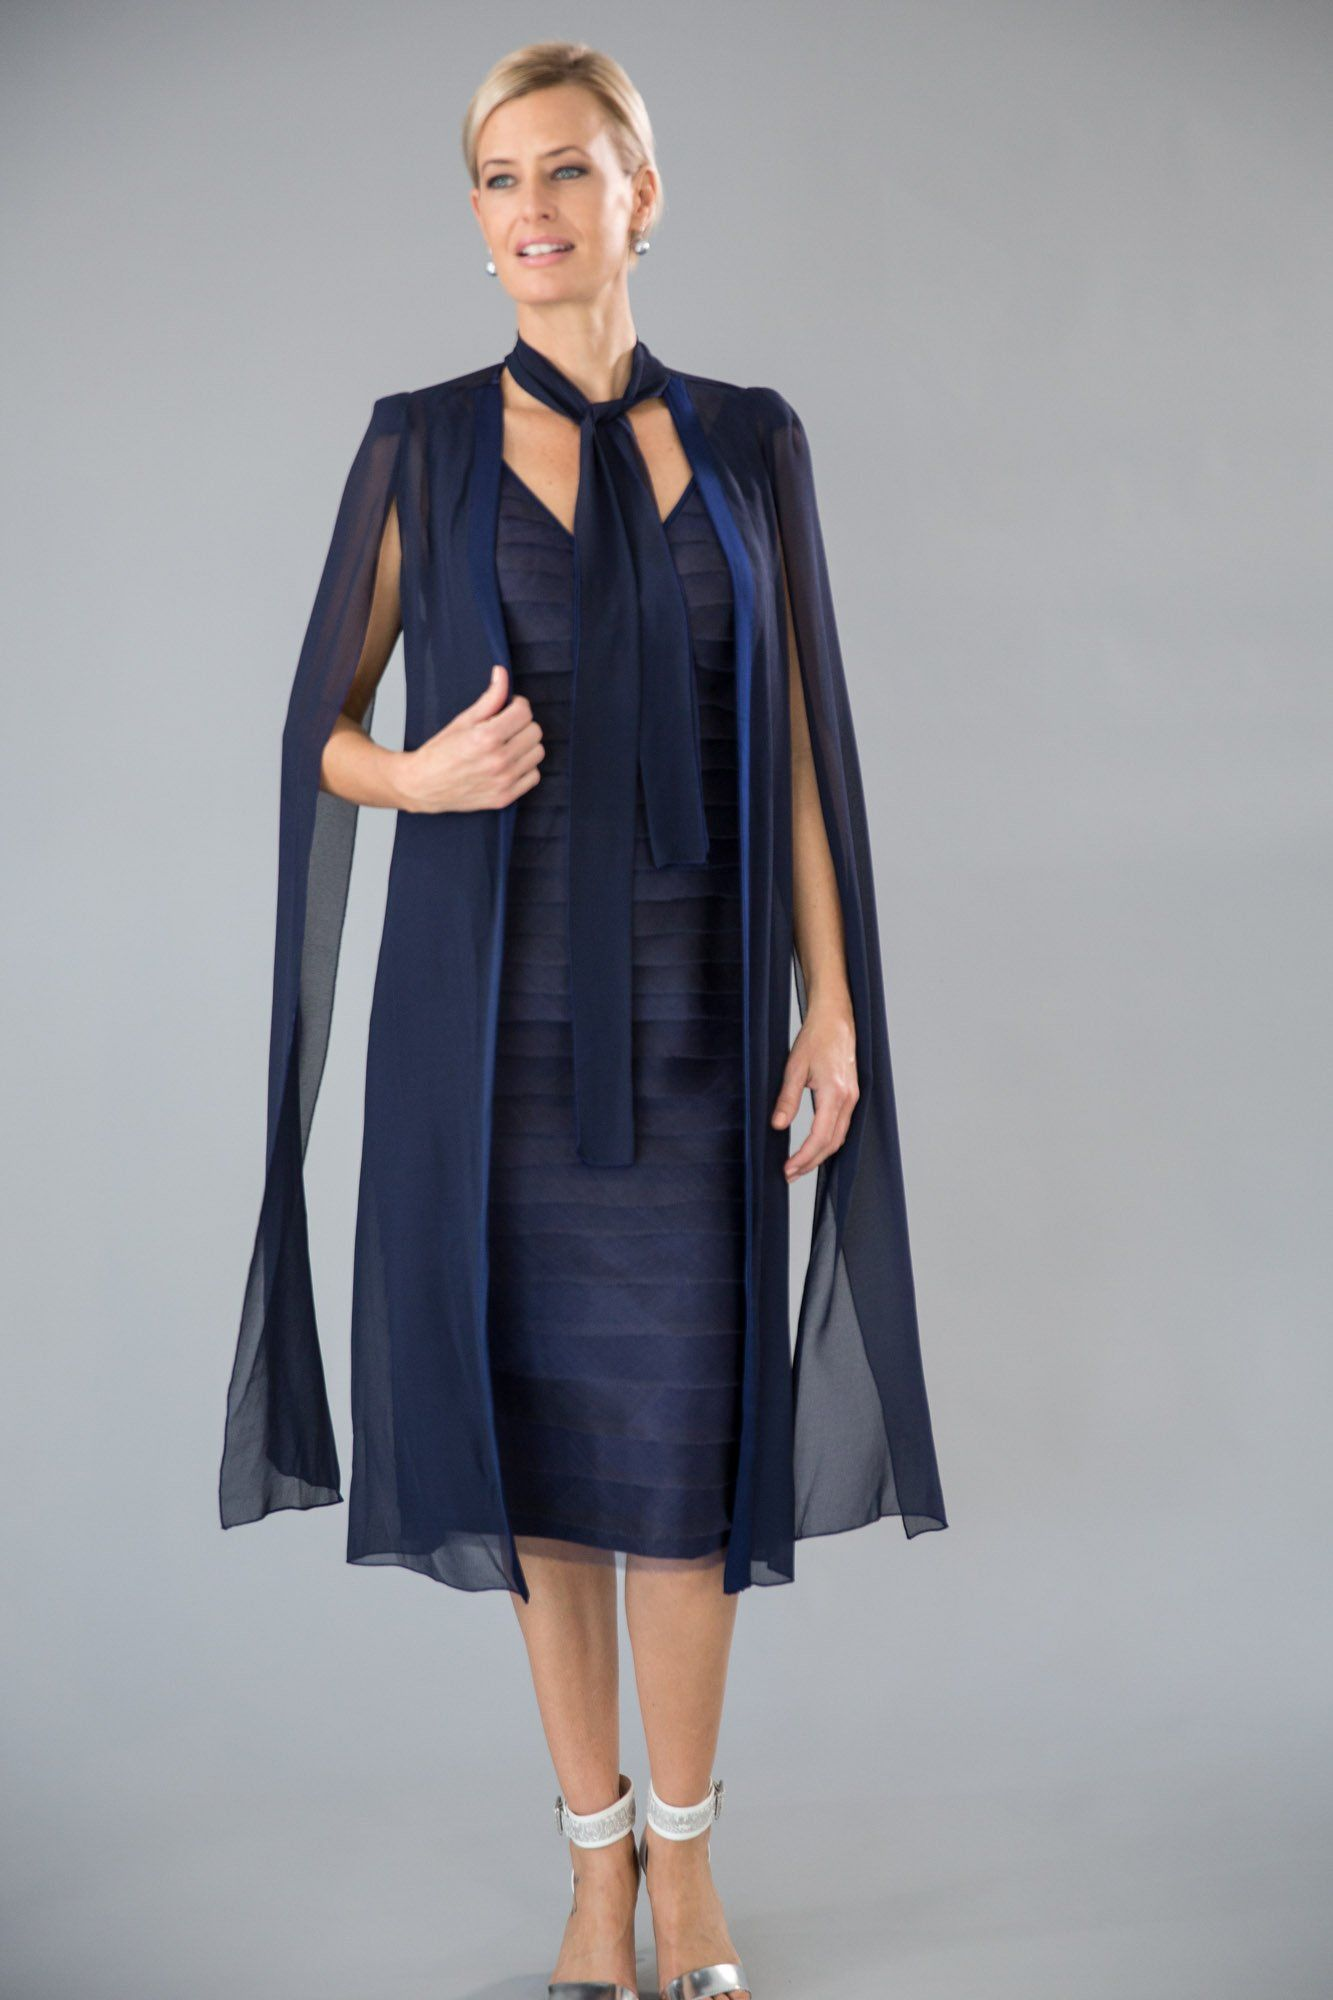 3acfef158779 The Oasis Dress and Coat in navy blue is an elegant option for the modern #